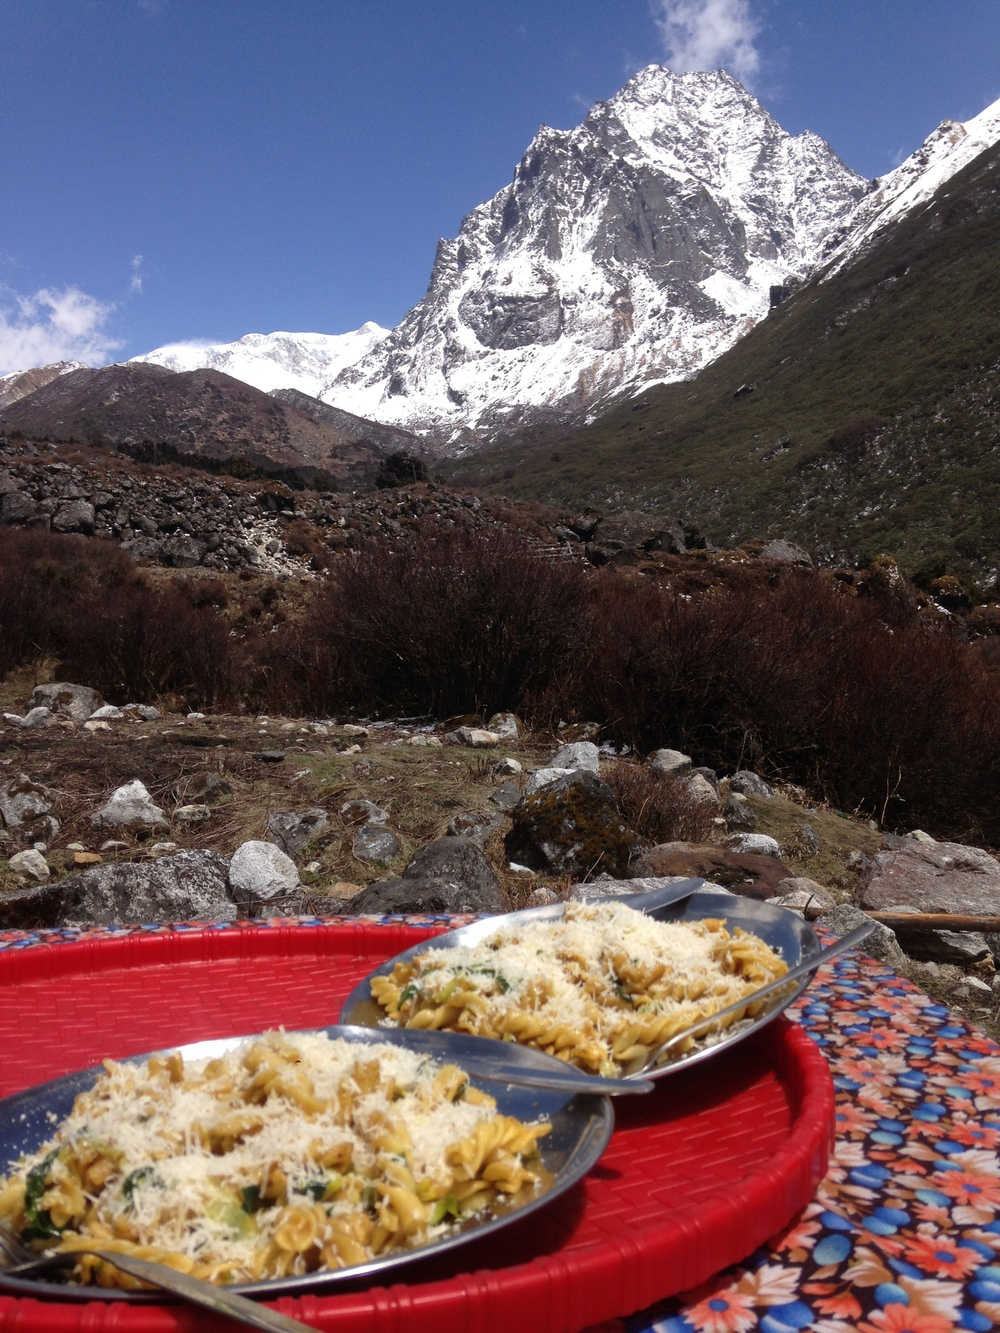 A beautiful Mac & Yak Cheese picnic at Cheram.